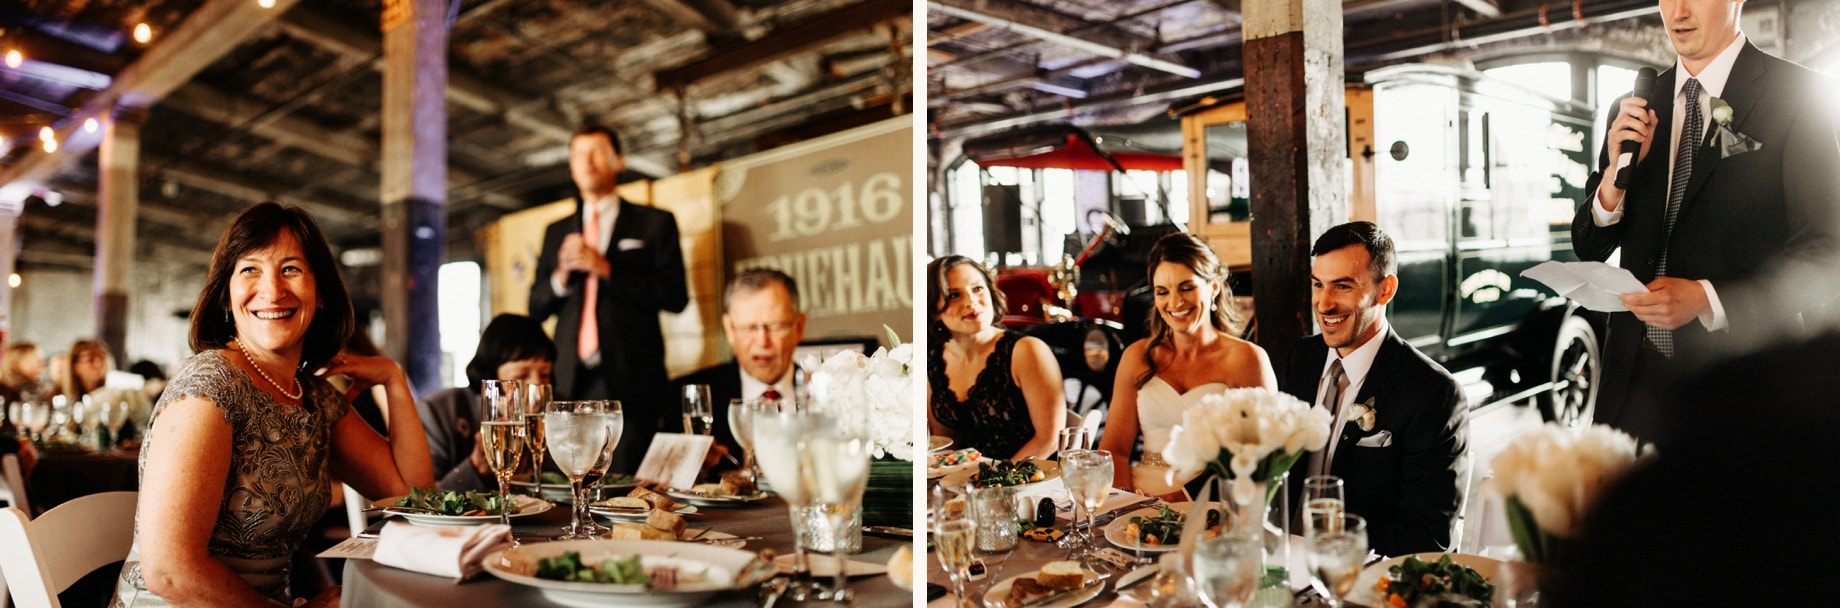 toast reactions during a wedding at the piquette plant